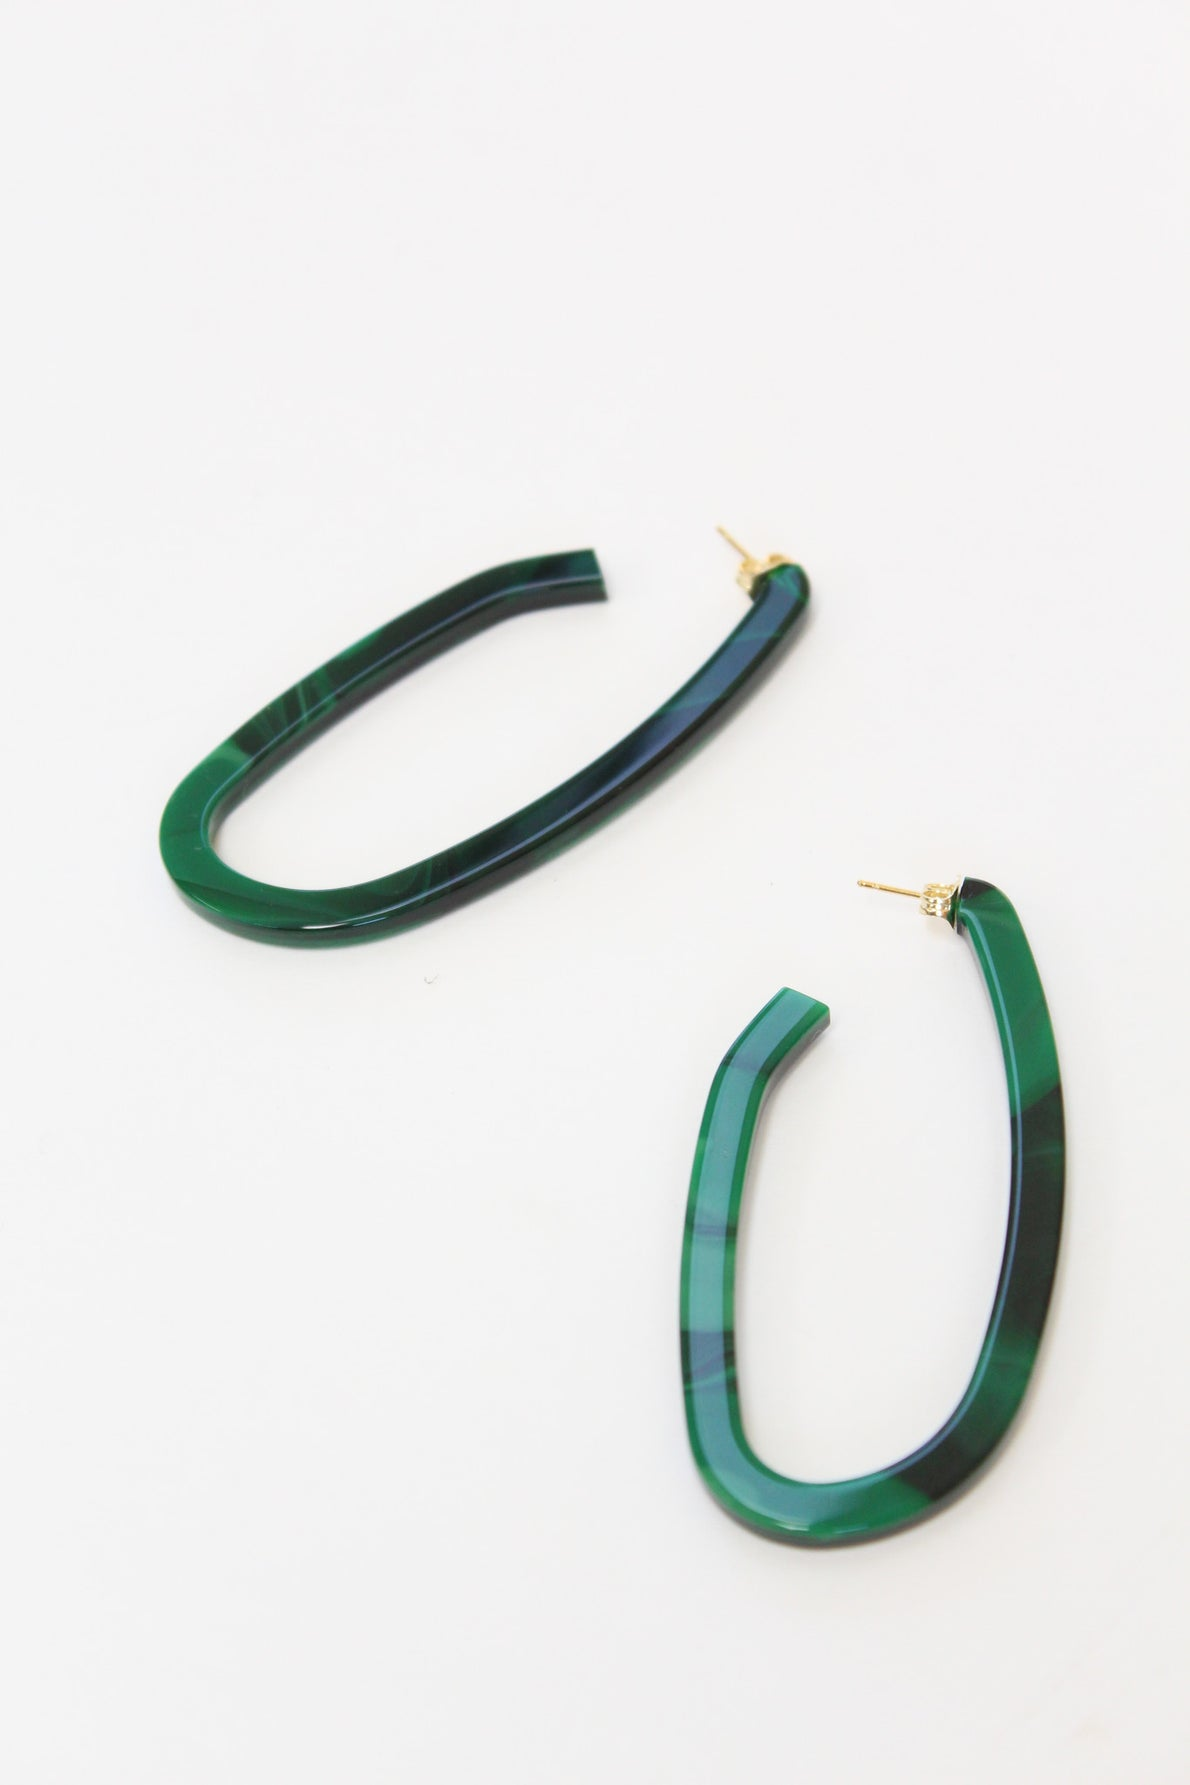 Rachel Comey Maya Earrings / Beklina